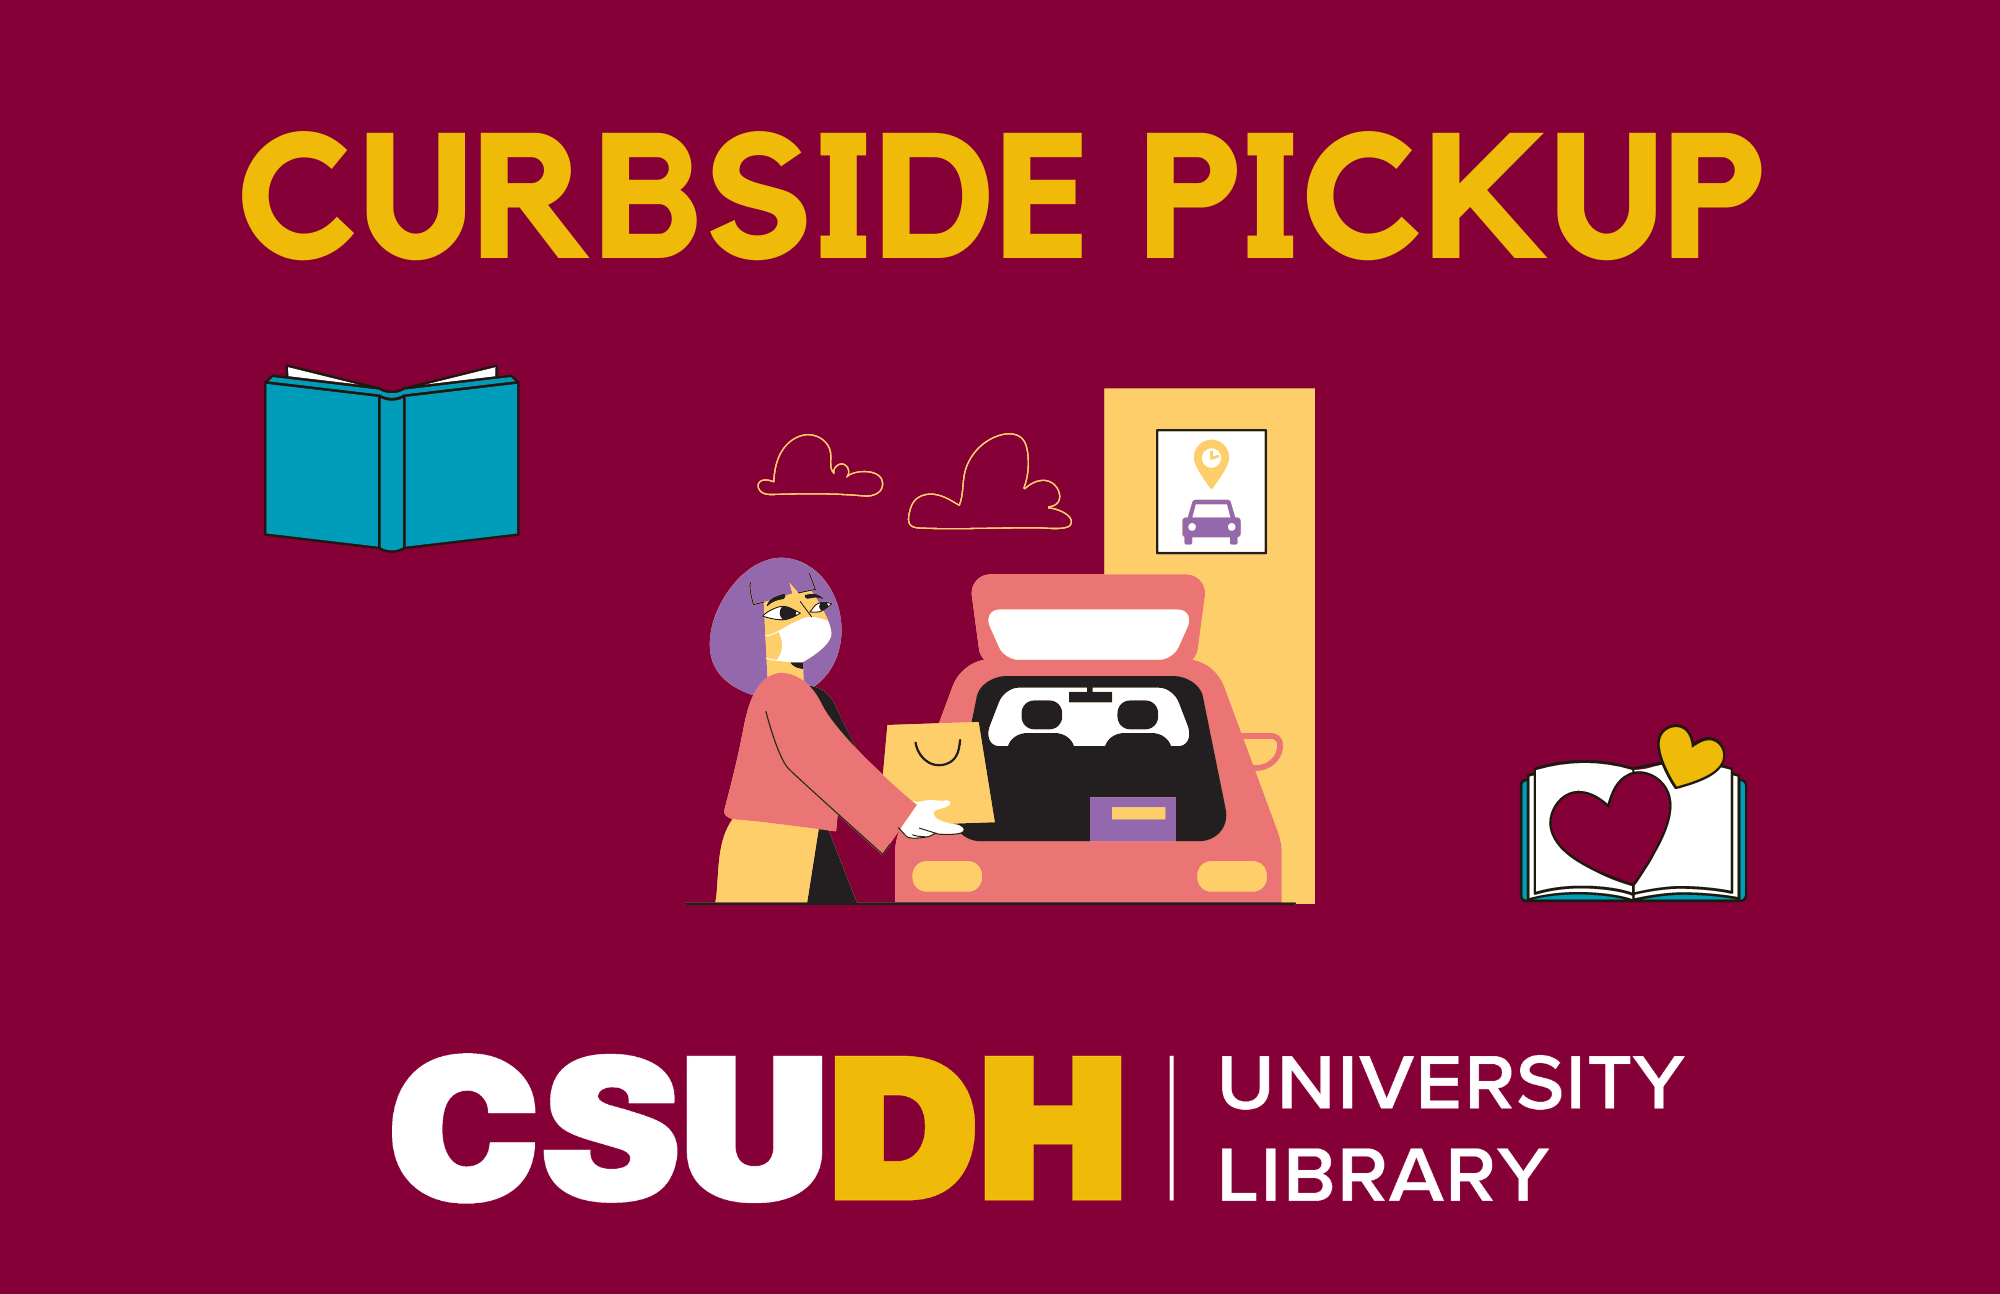 Curbside Pickup visual - image of a woman loading a bag into the hatchback of a car